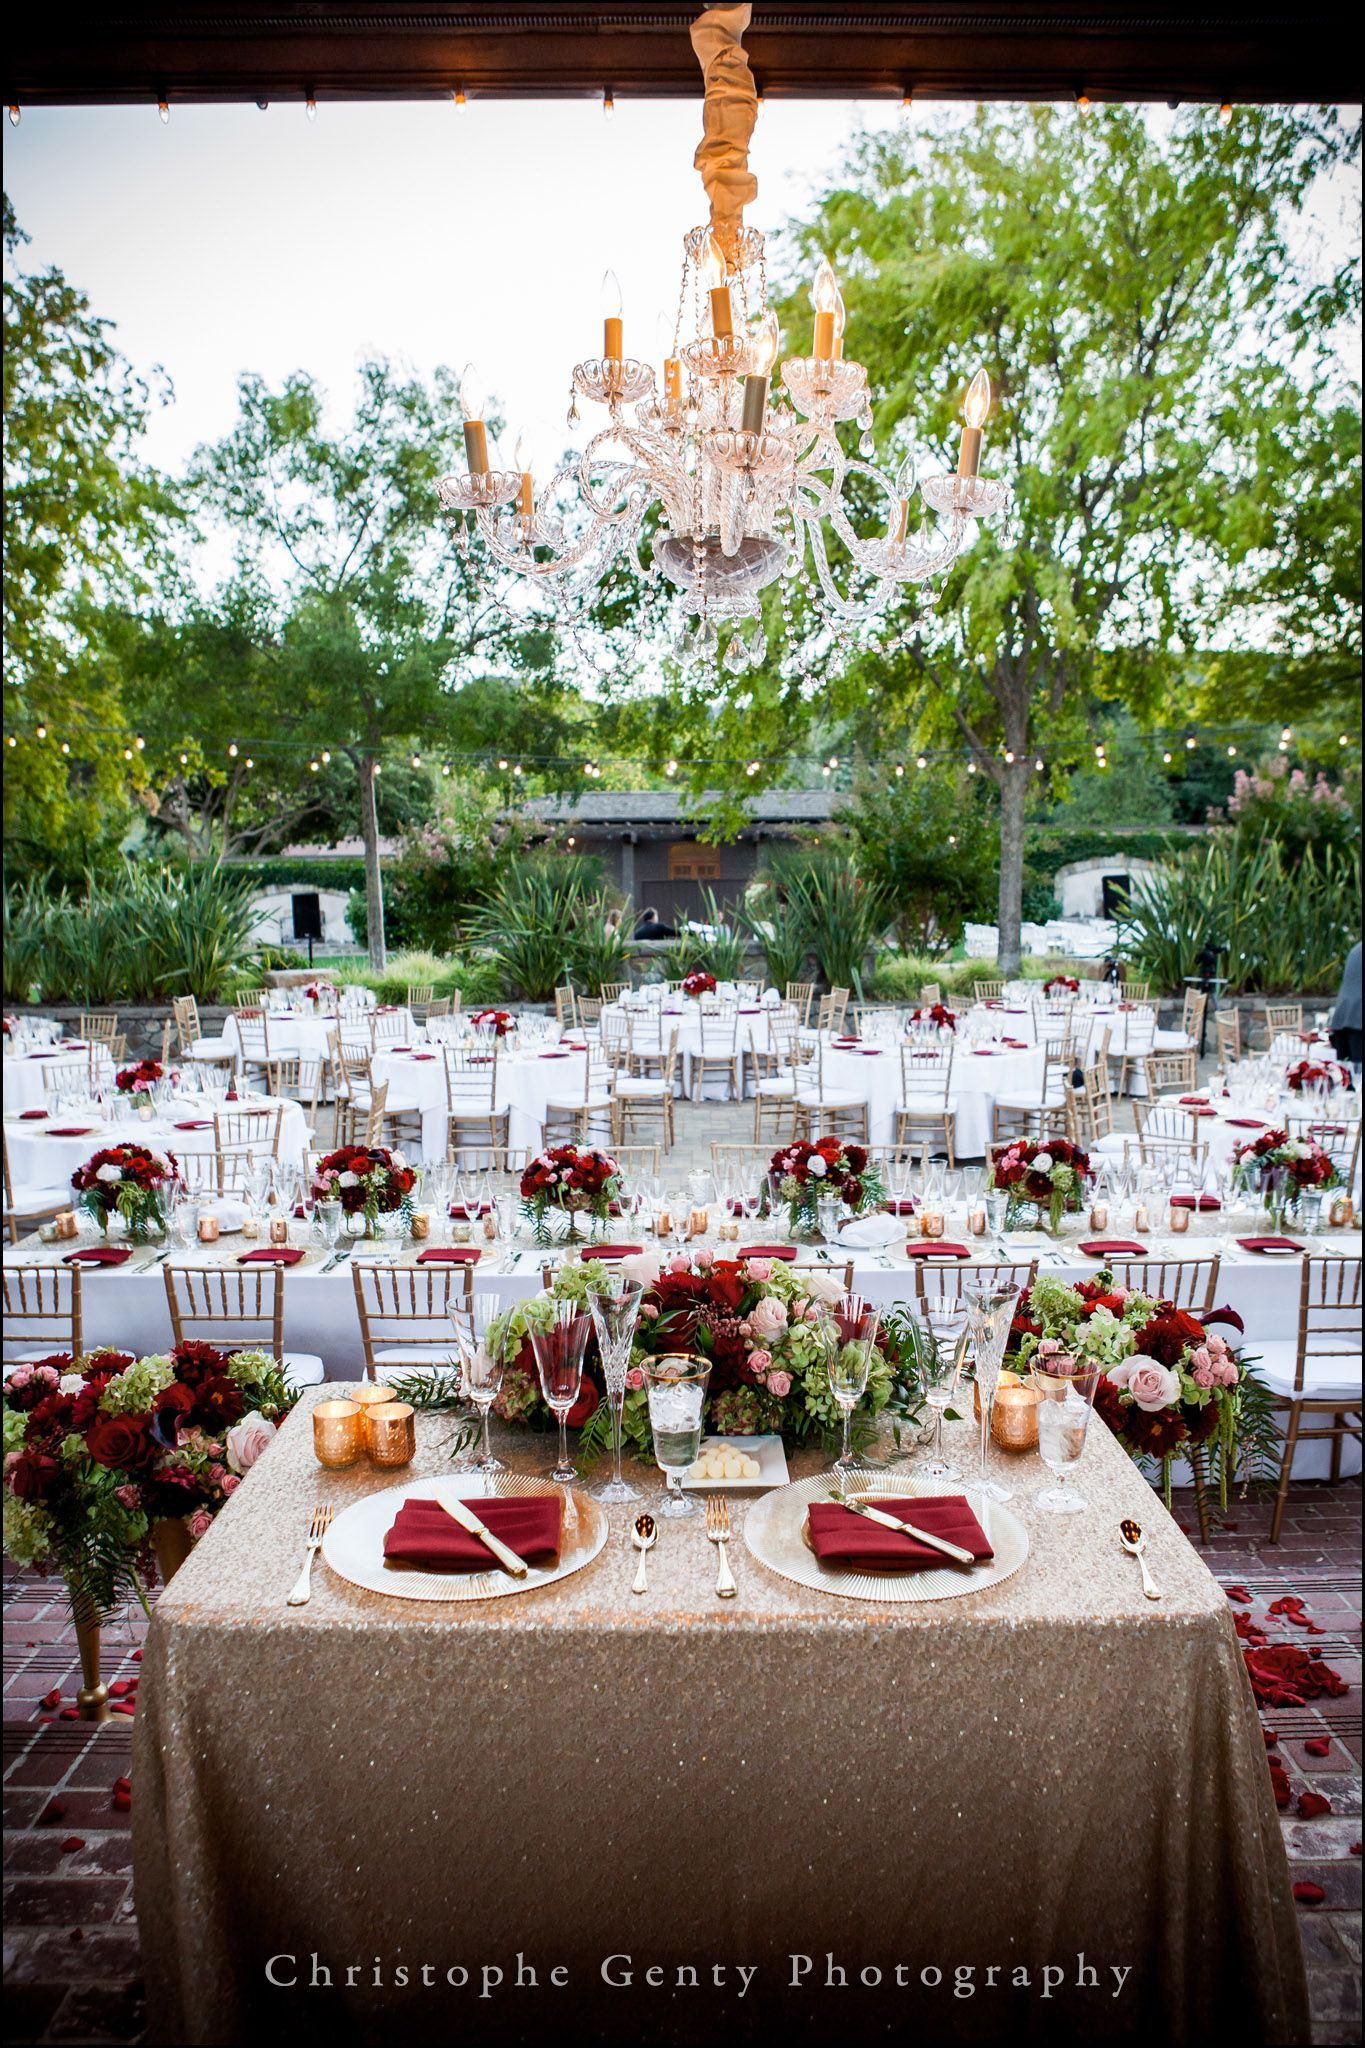 The Vintage Estate The Villagio Inn And Spa Wedding Photography In Yountville Ca Christ Napa Wedding Photography Napa Wedding Photographer Napa Wedding